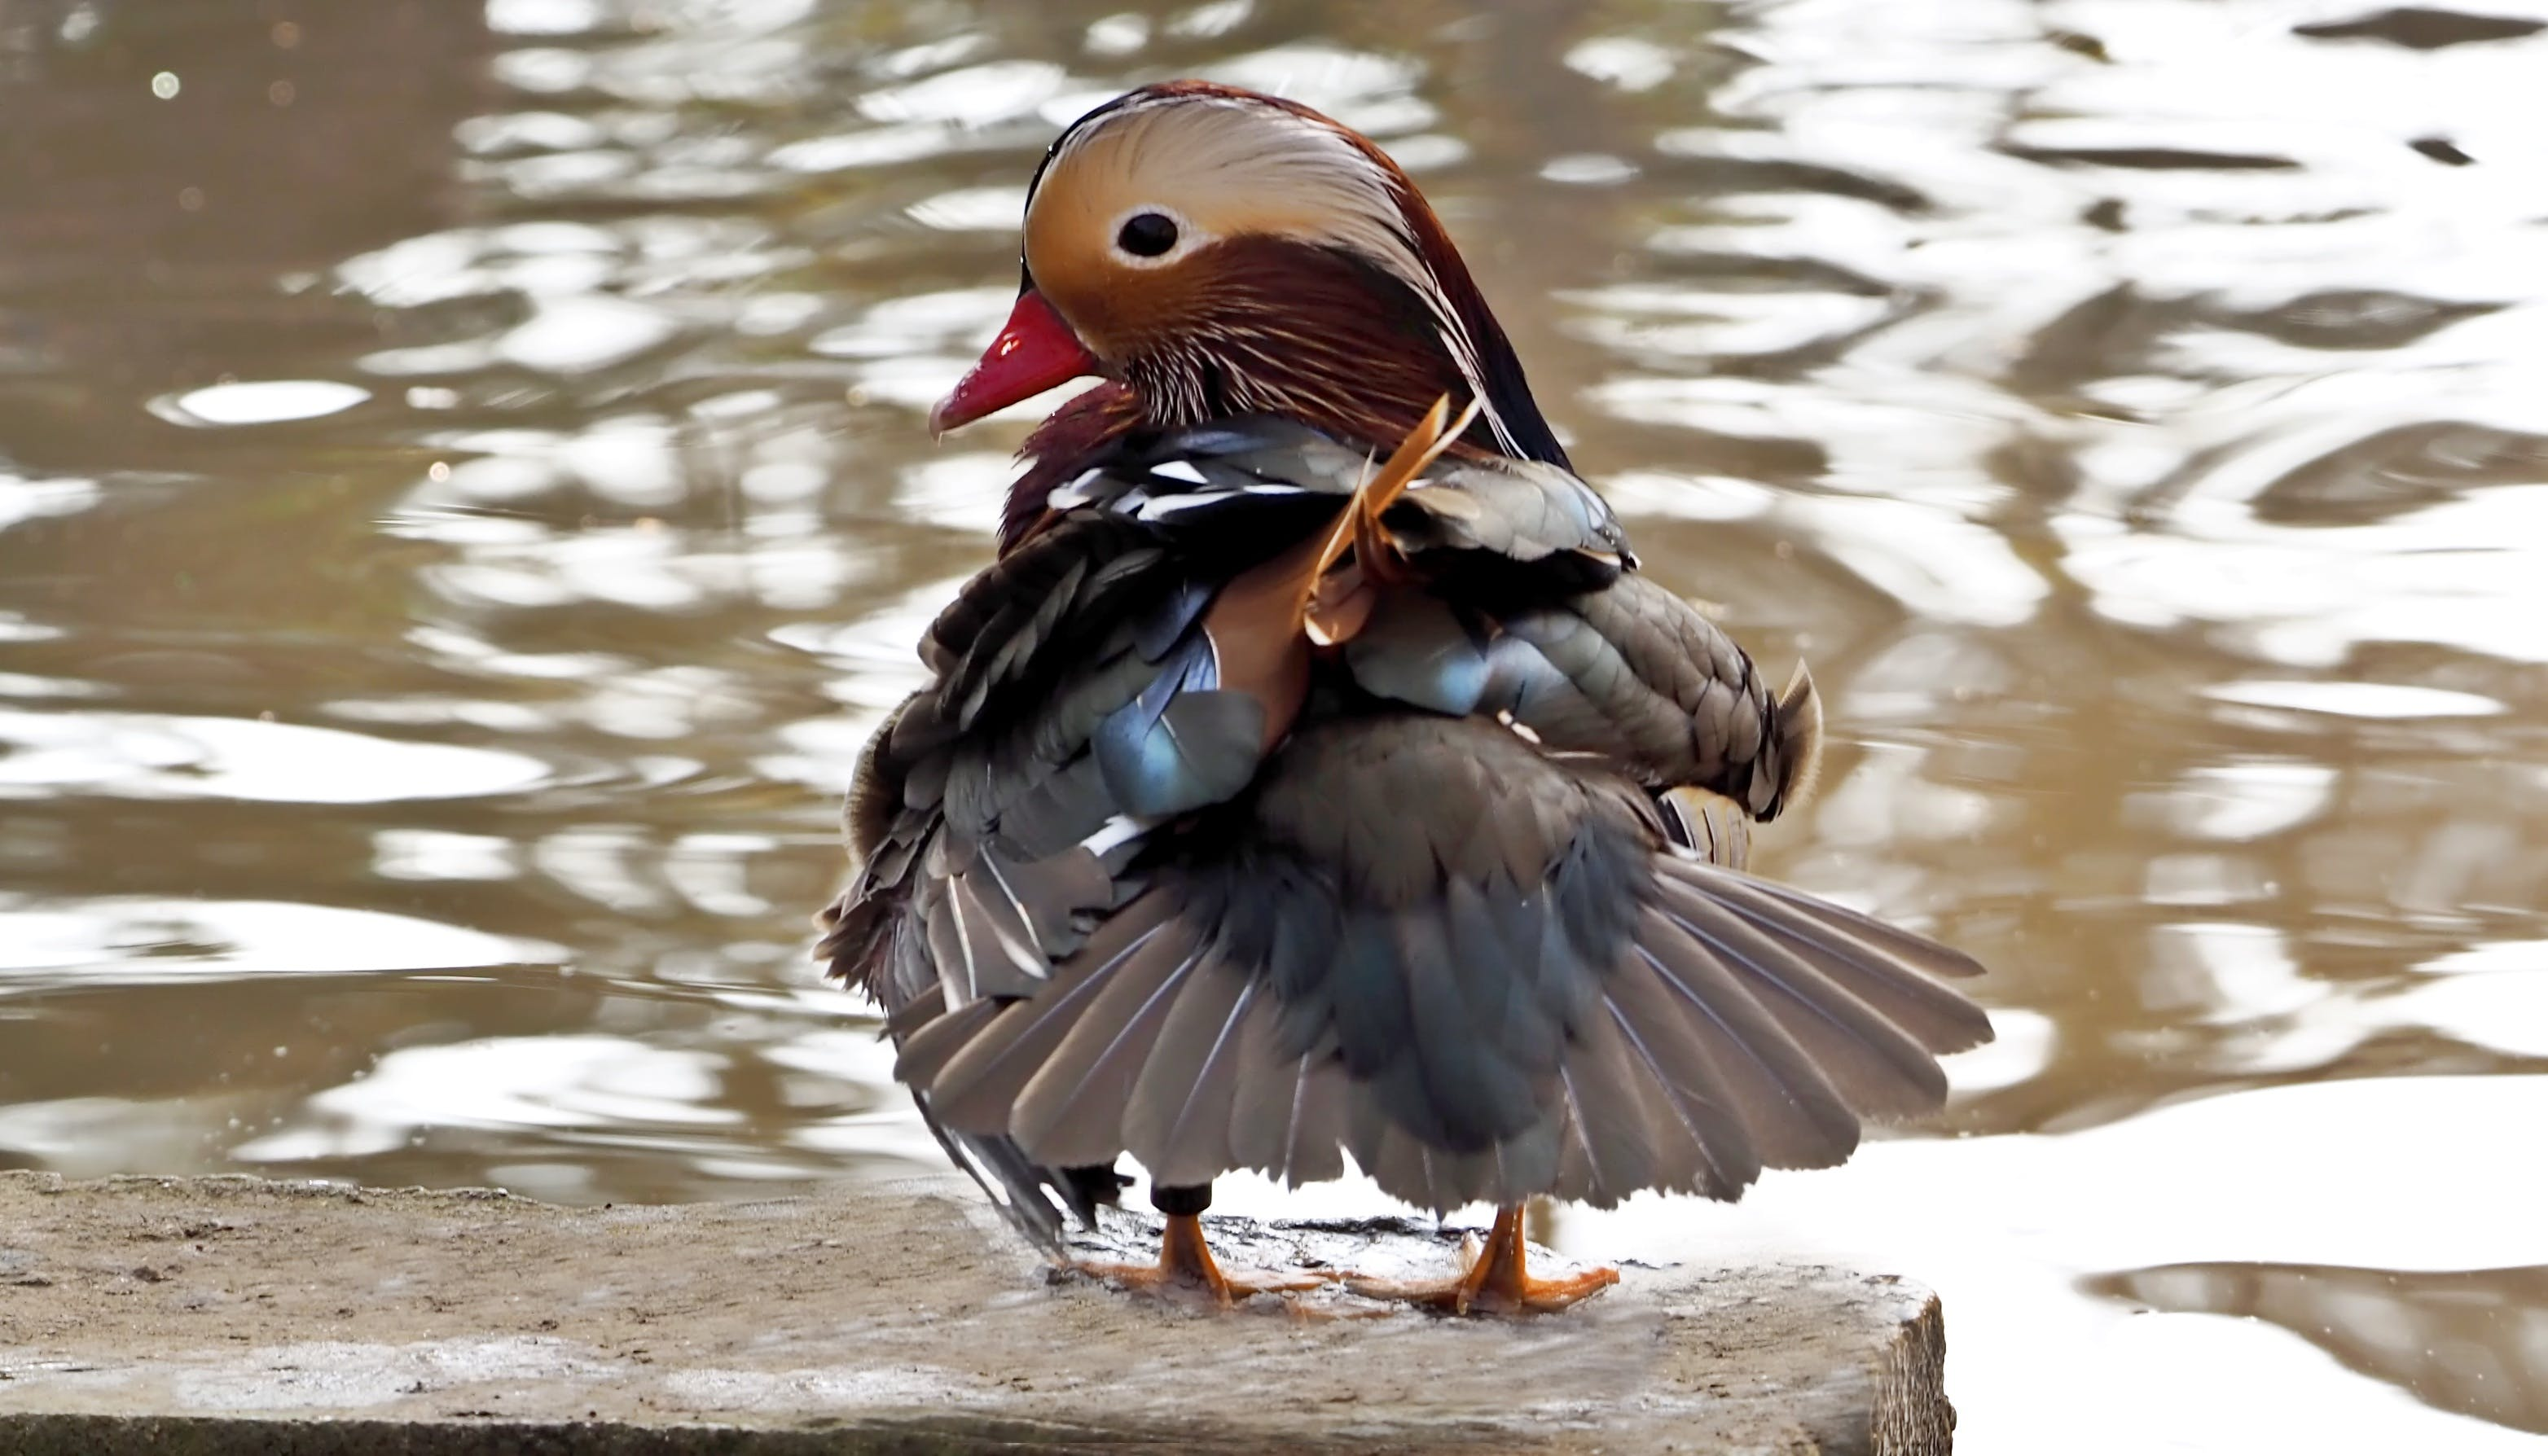 Brown Red and Black Duck on Grey Concrete Surface Near Body of Water